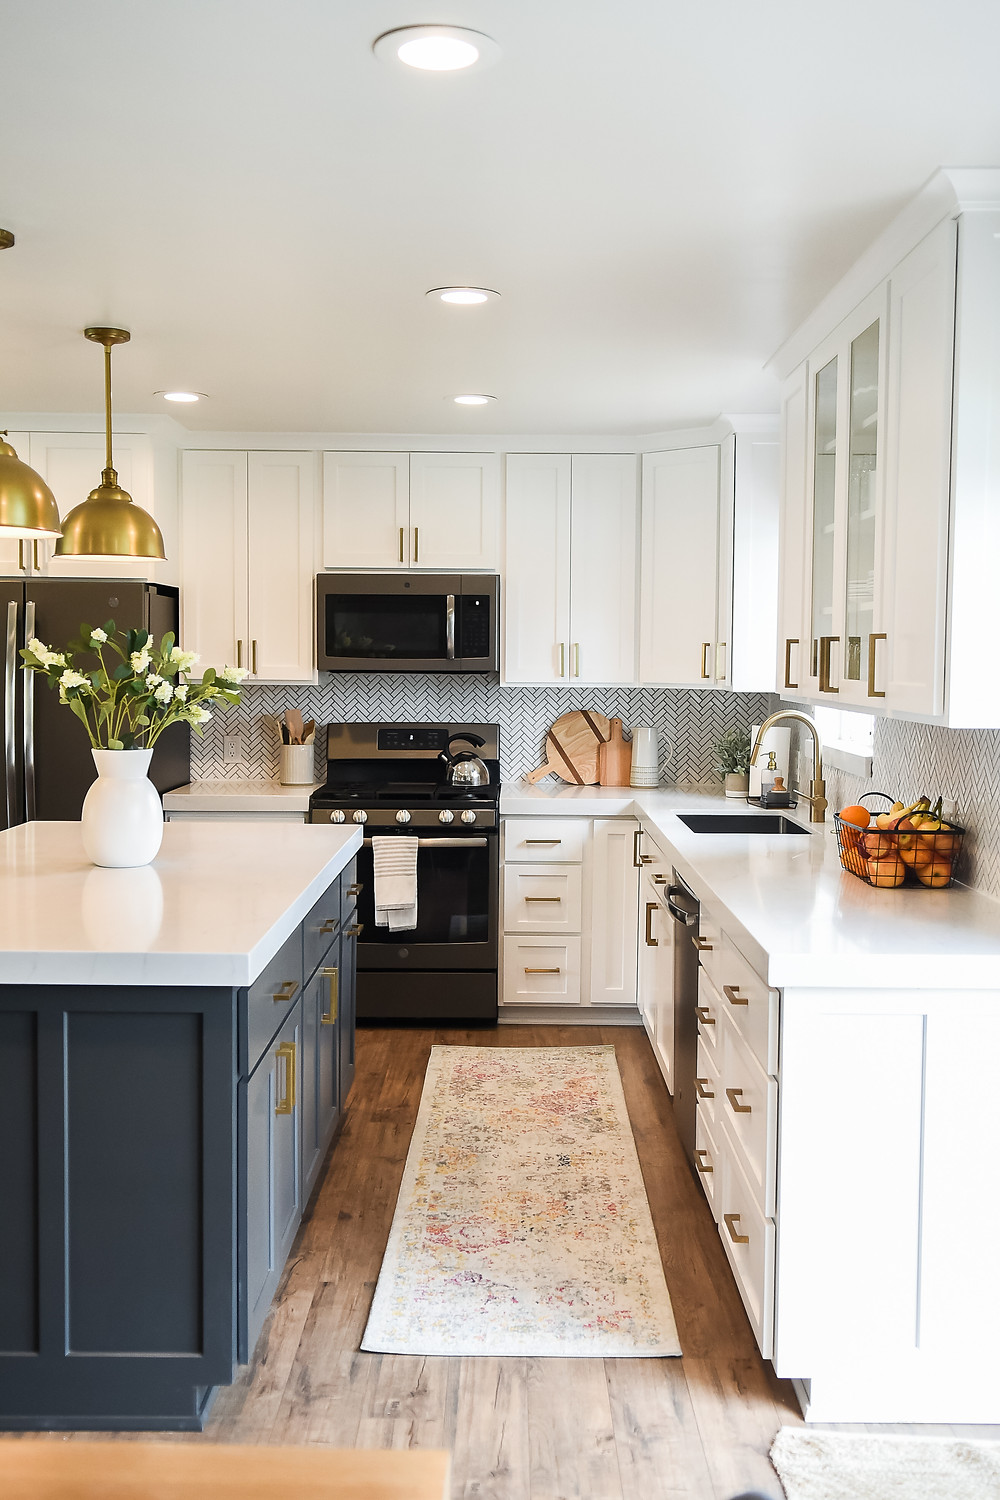 Reset Your Nest blog - 4 steps to making a house a home